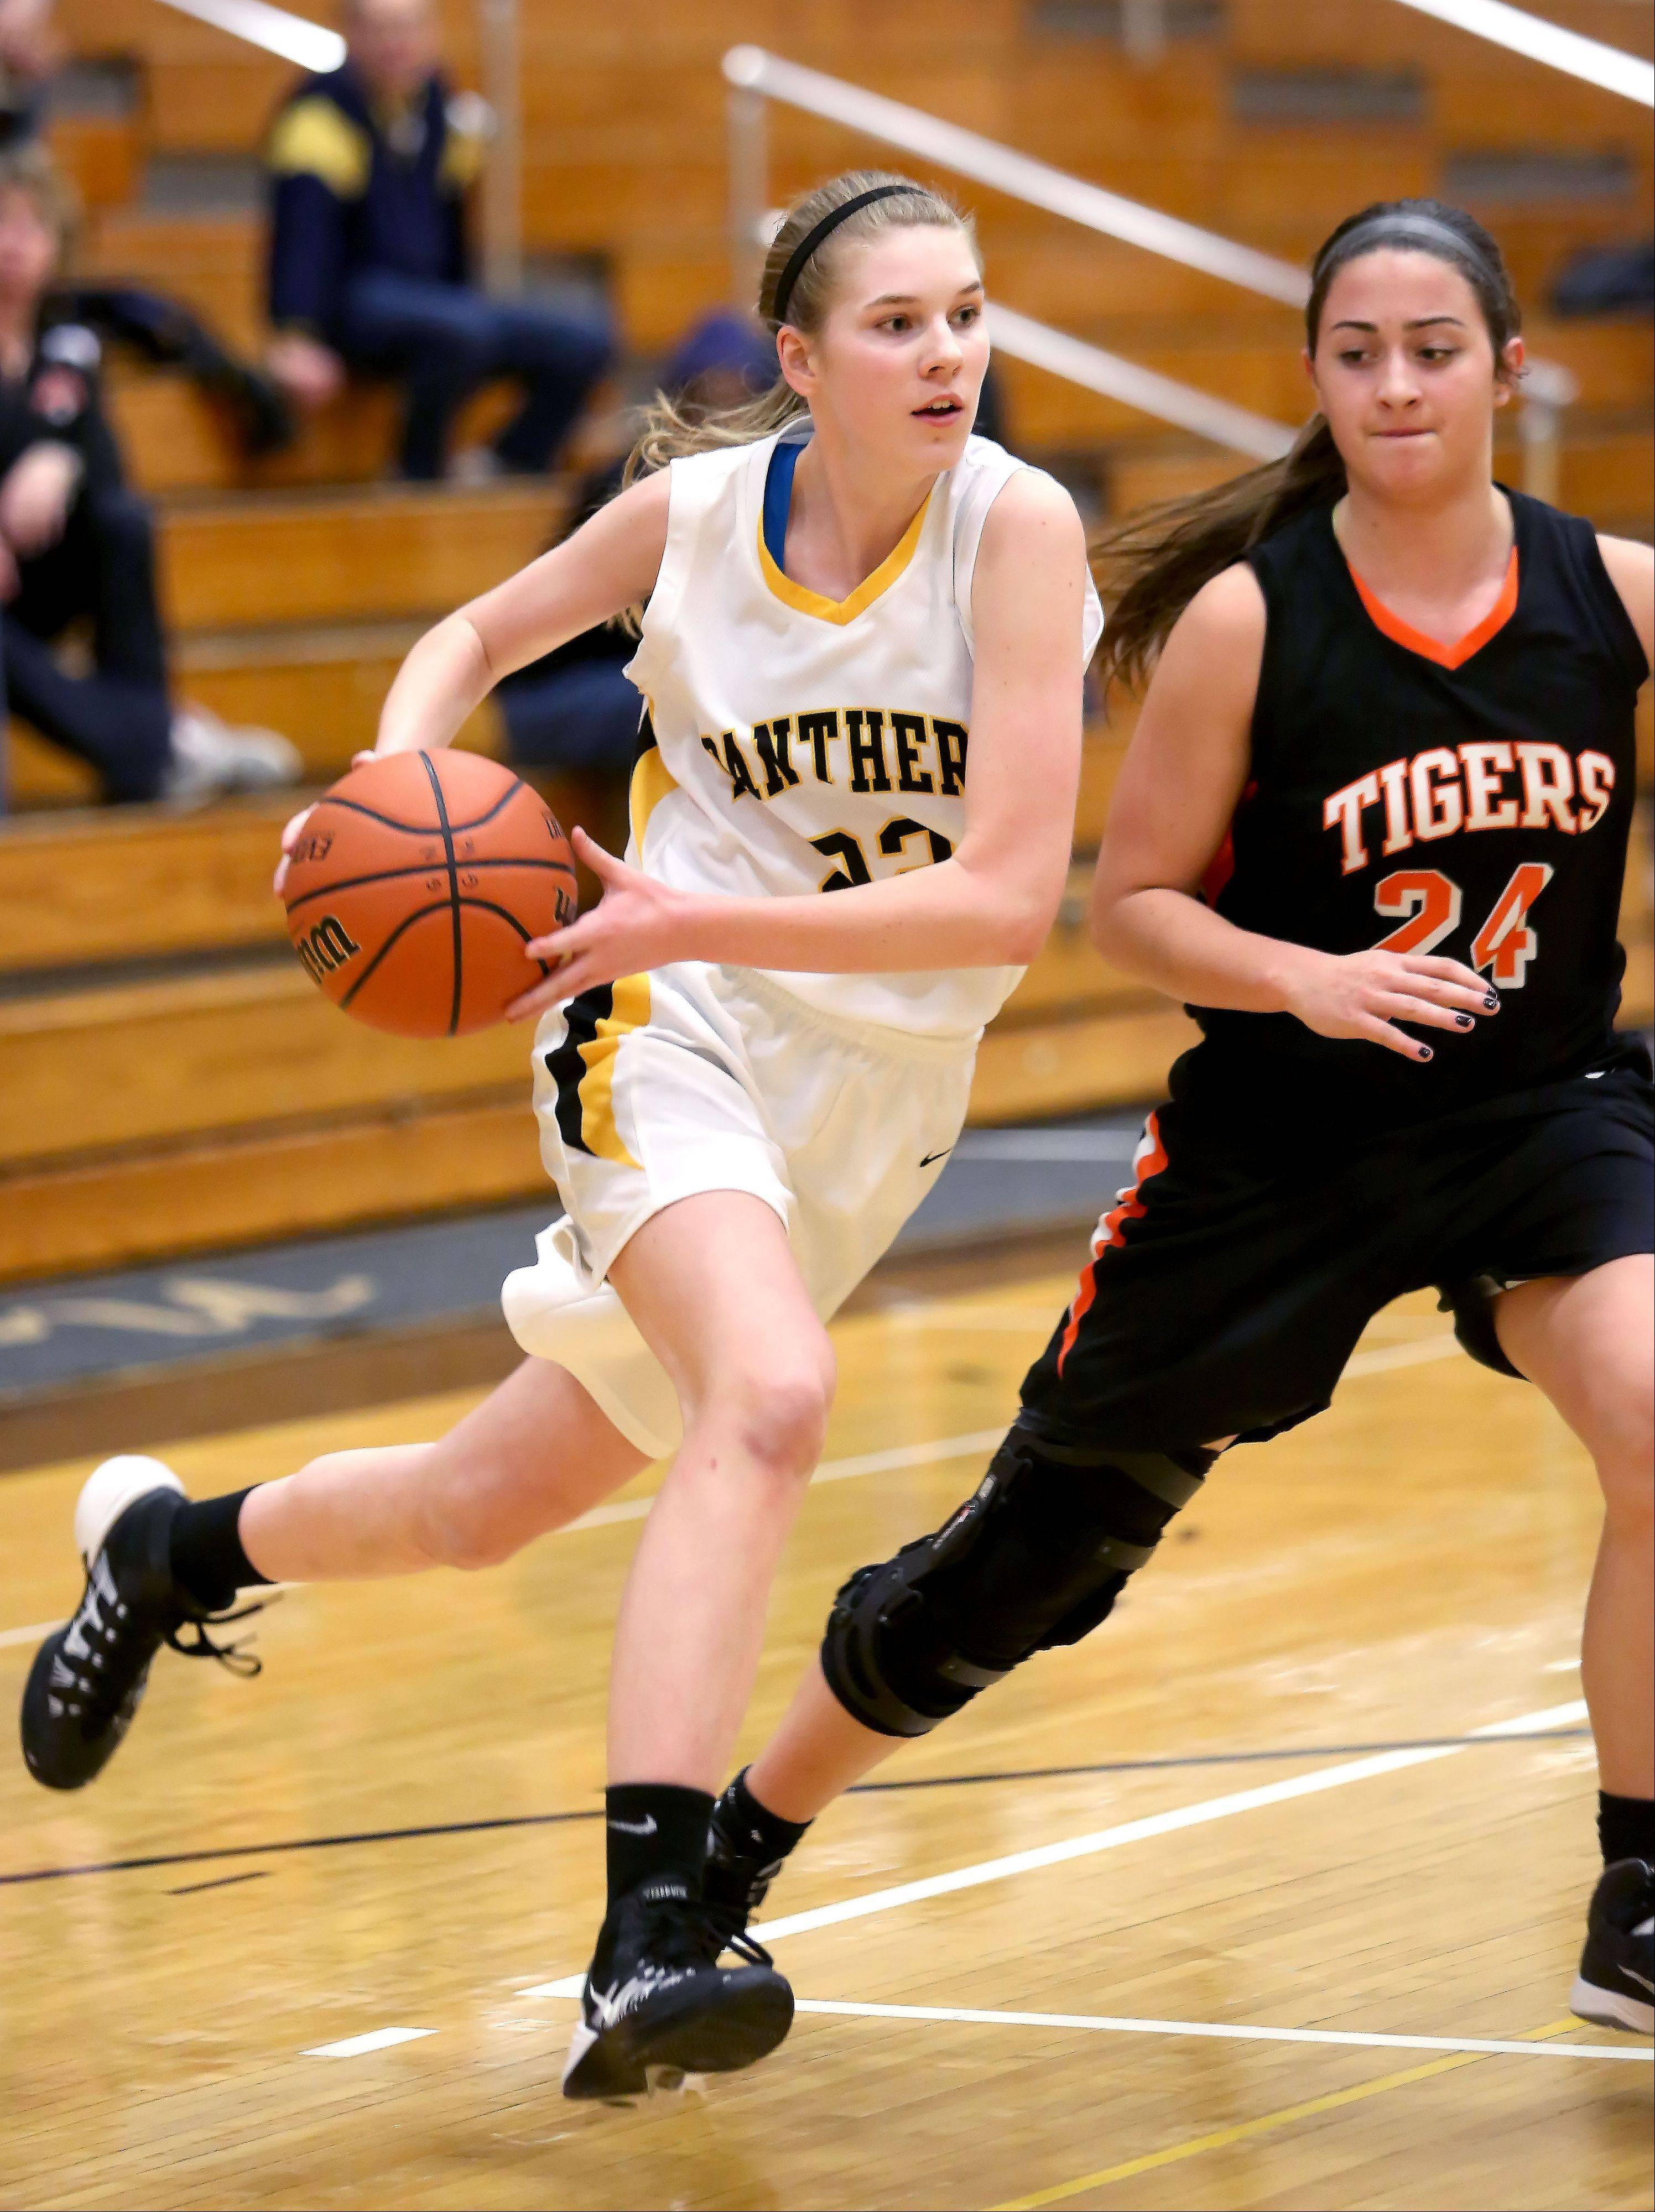 Glenbard North's Jennifer Deegan, left, drives past Maggie Dansdill of Wheaton Warrenville South.